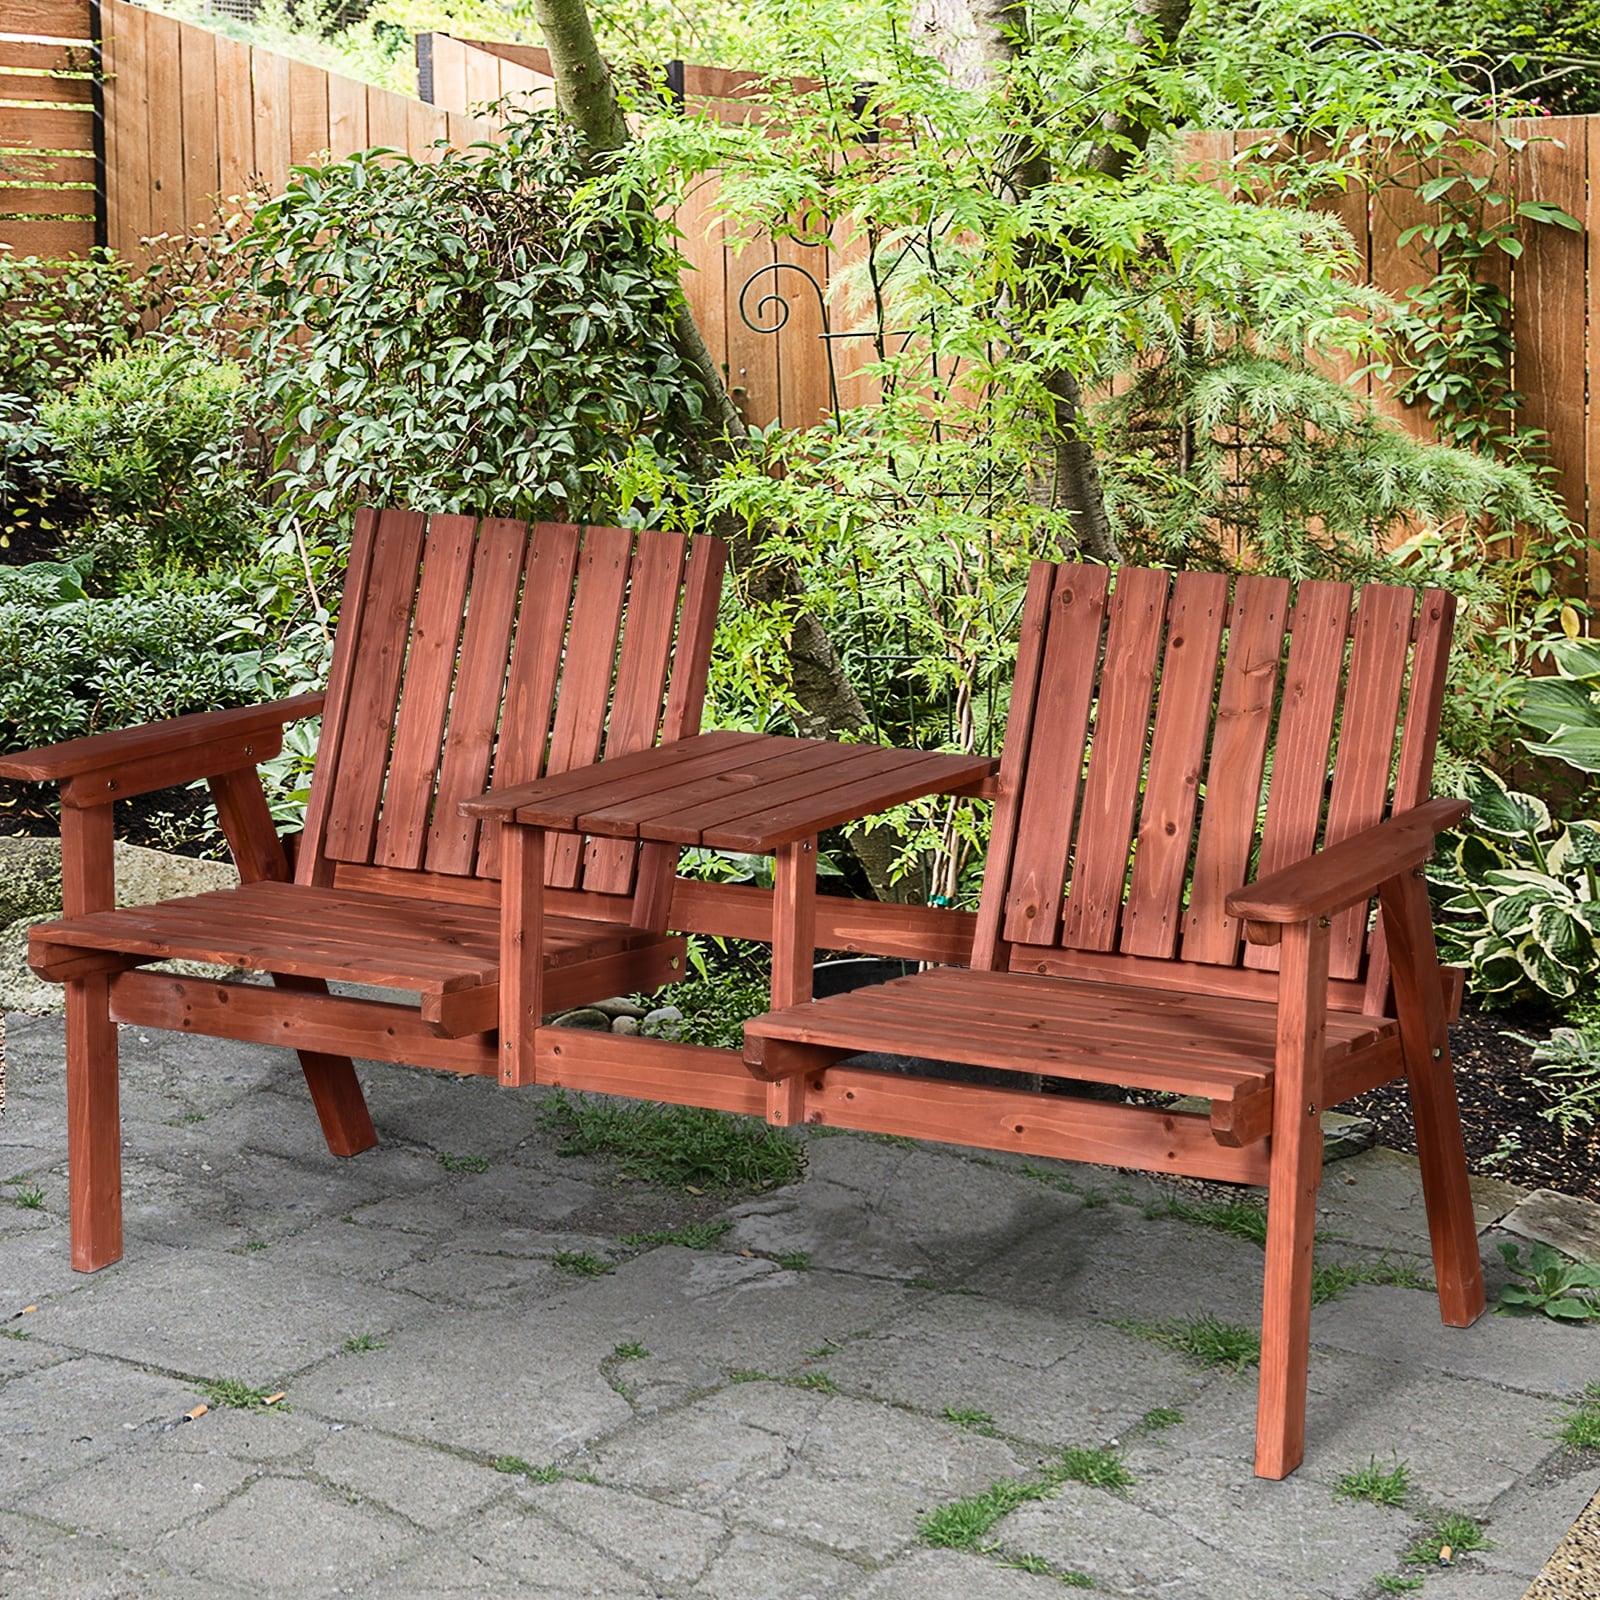 Picture of: Outsunny Outdoor Patio Wooden Double Chair Garden Bench With Middle Table Natural Weather Fighting Materials Overstock 31098847